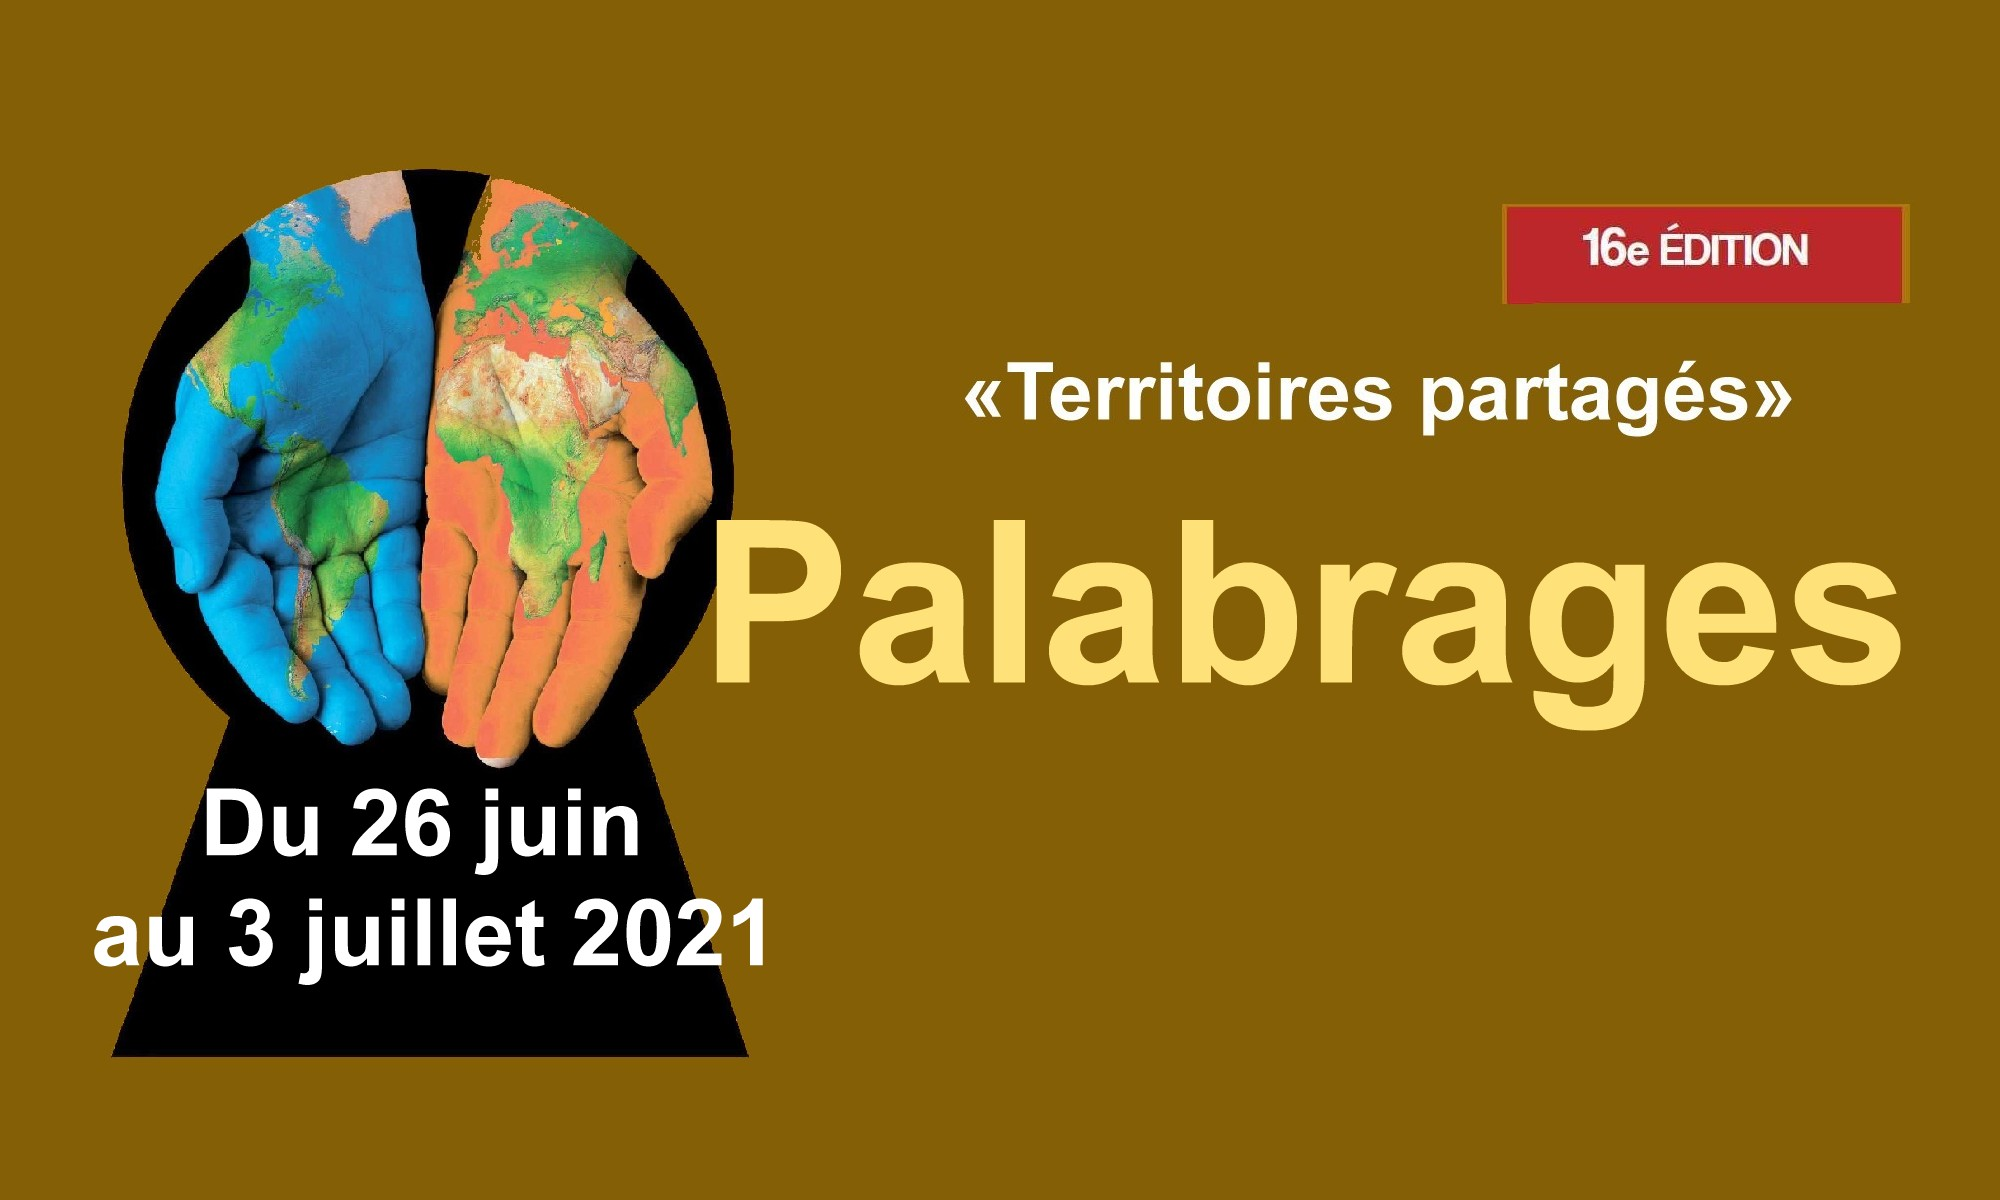 Palabrages